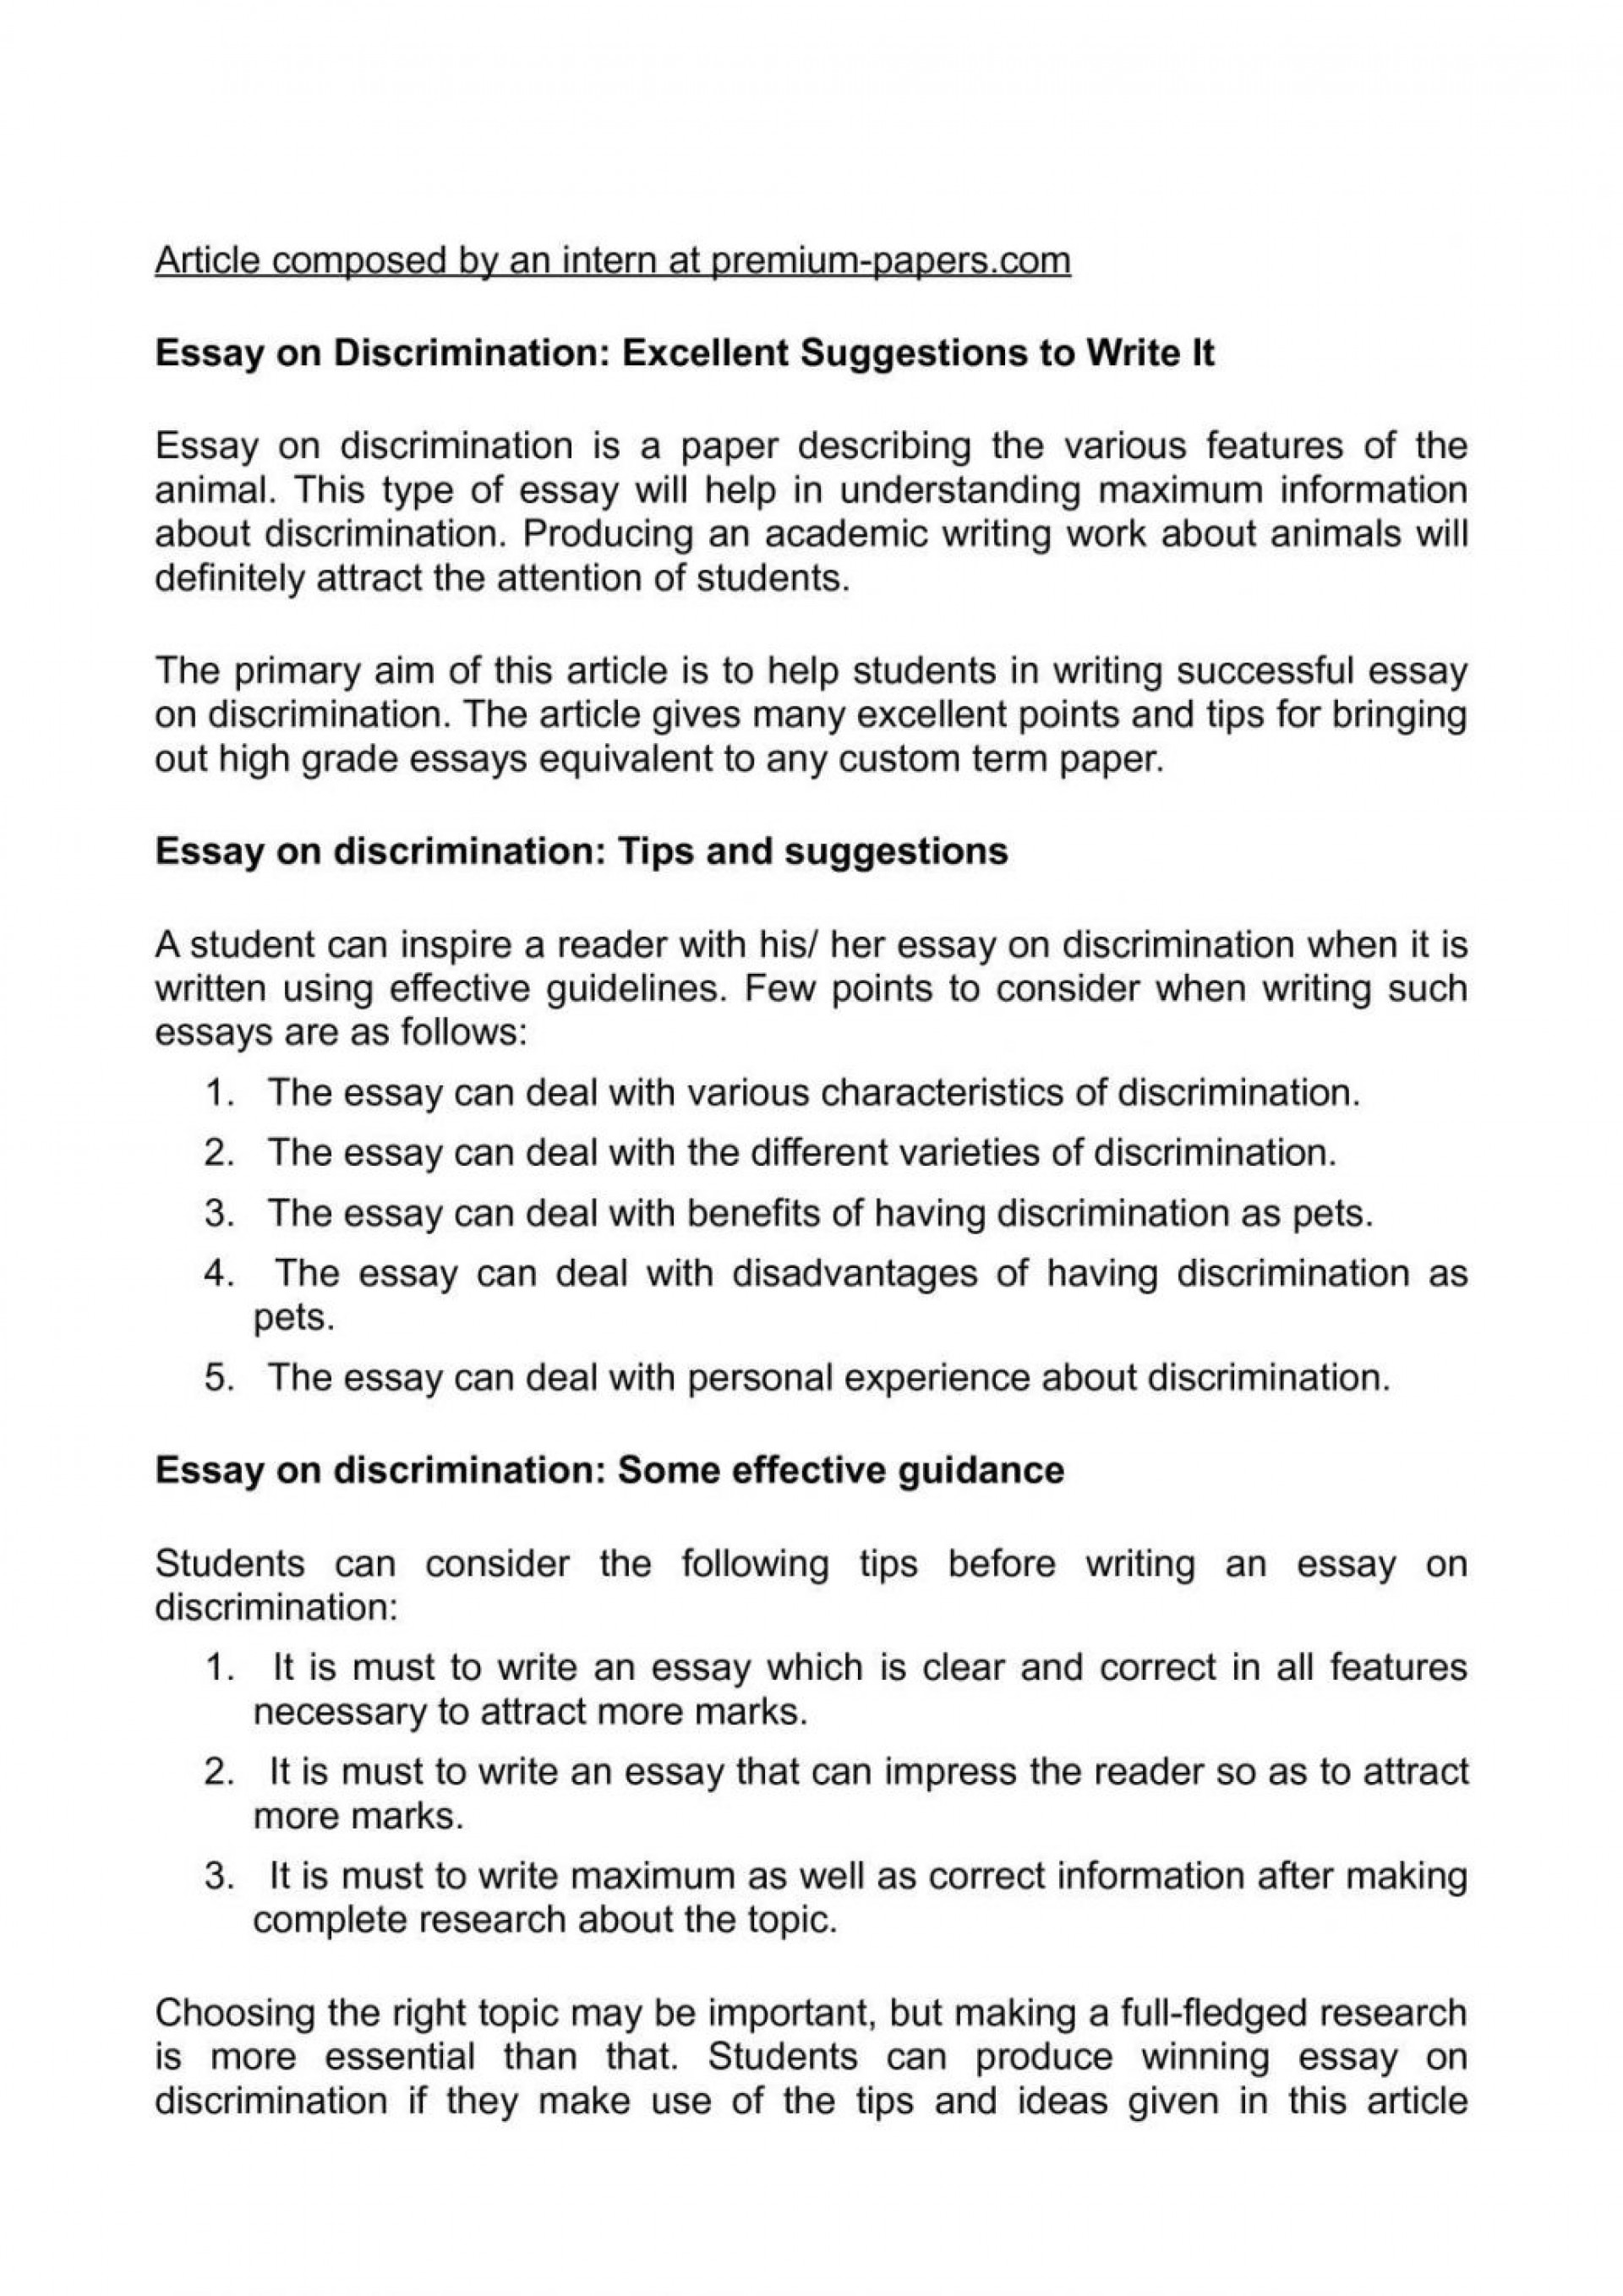 010 Essay On Discrimination Excellent Suggestions To Write It How An Prejudice And Racial Paper 1048x1483 Wonderful Kill A Mockingbird Title Theme Topics 1920